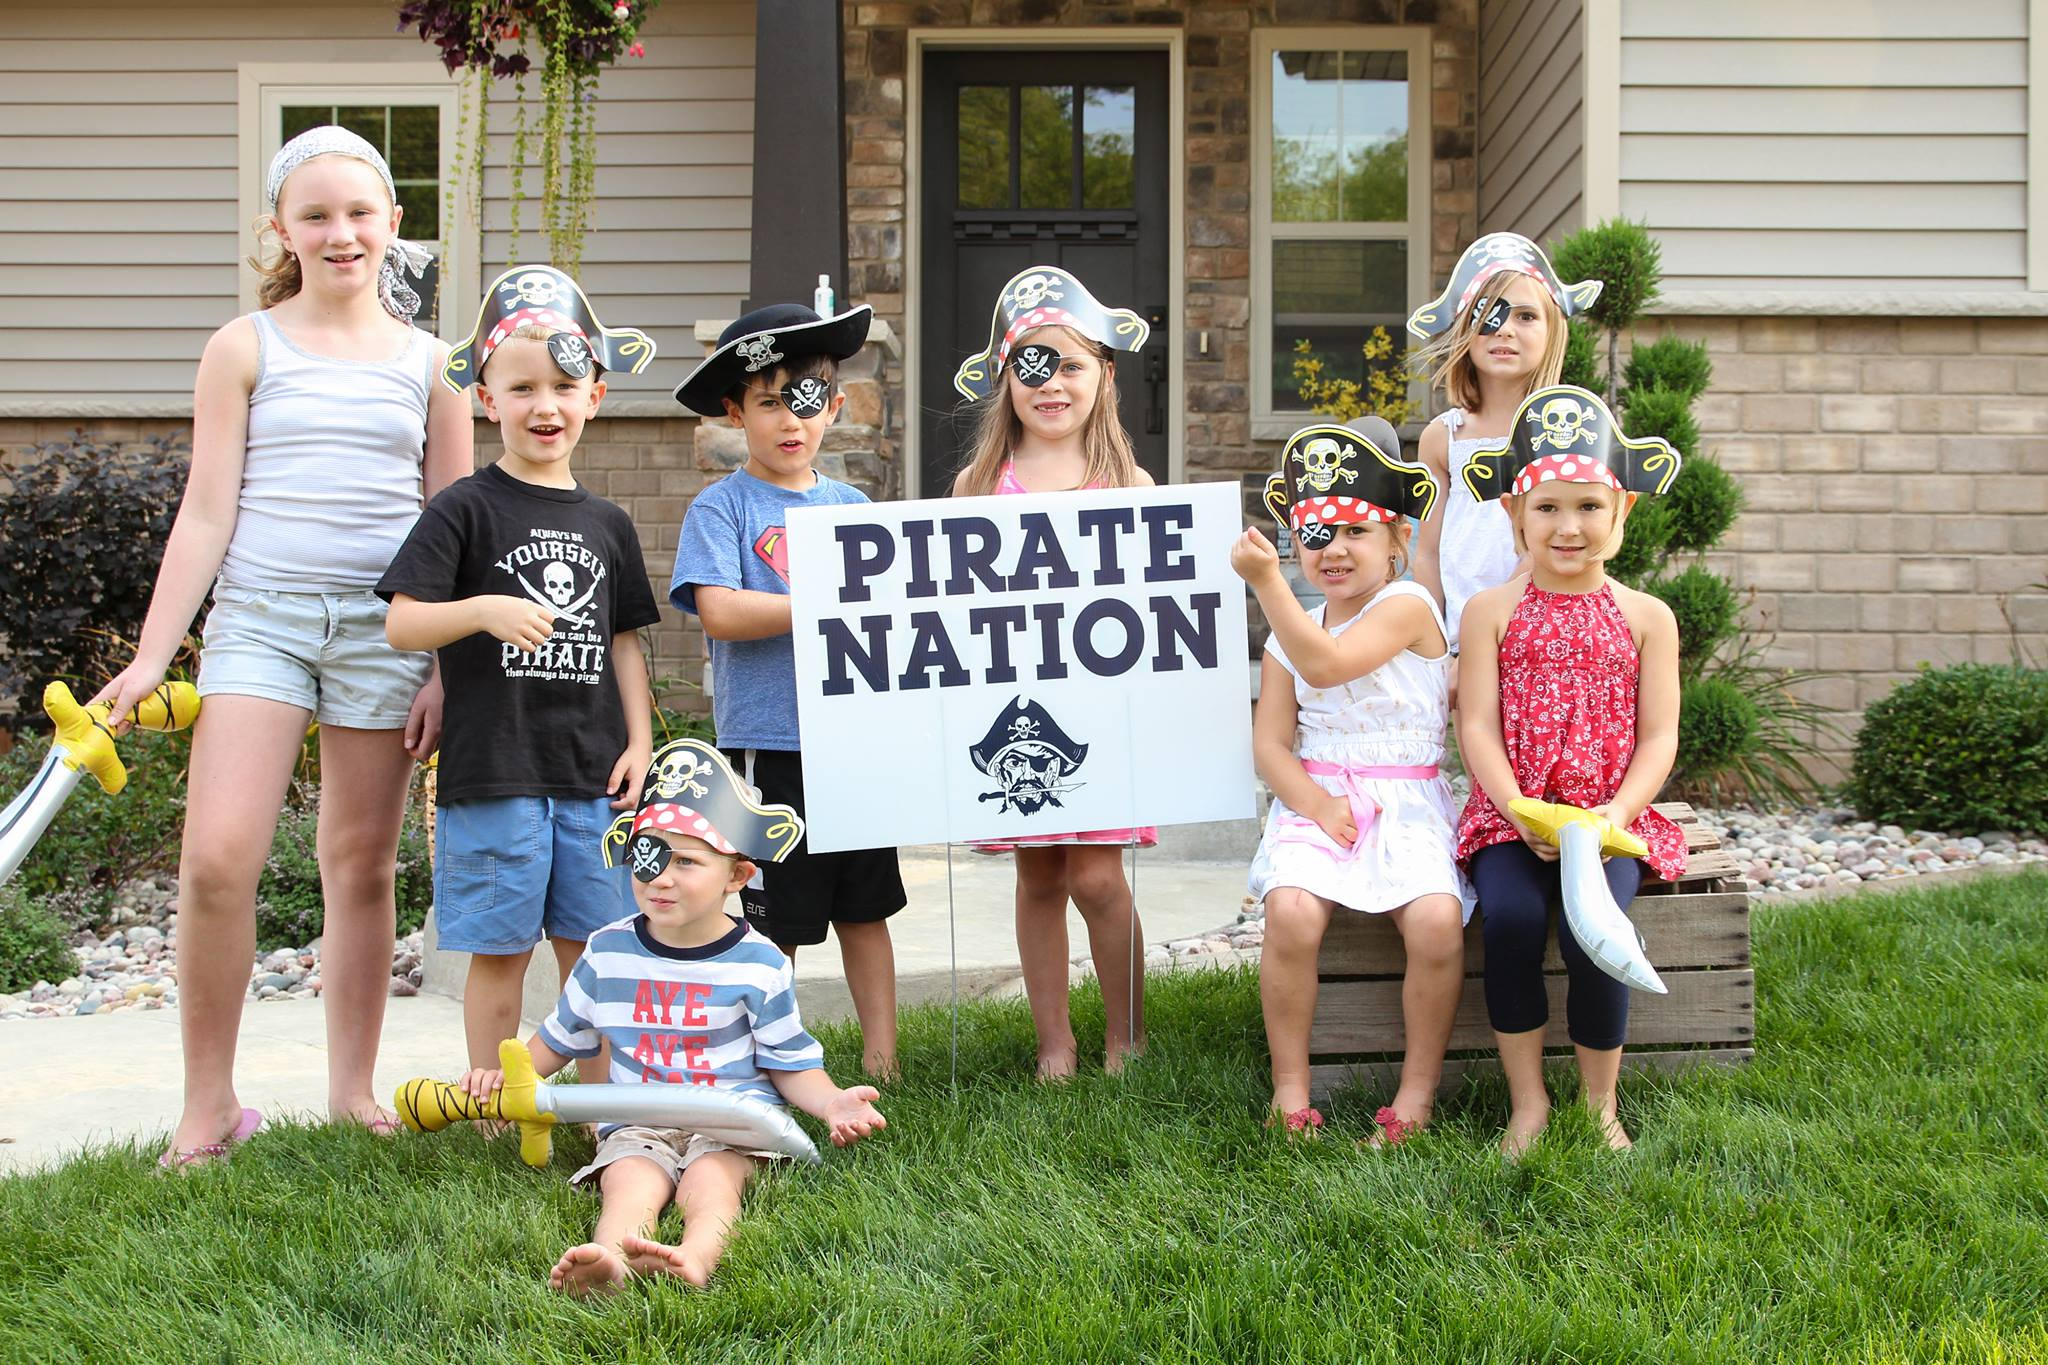 Pirate_Nation_Kids.jpg